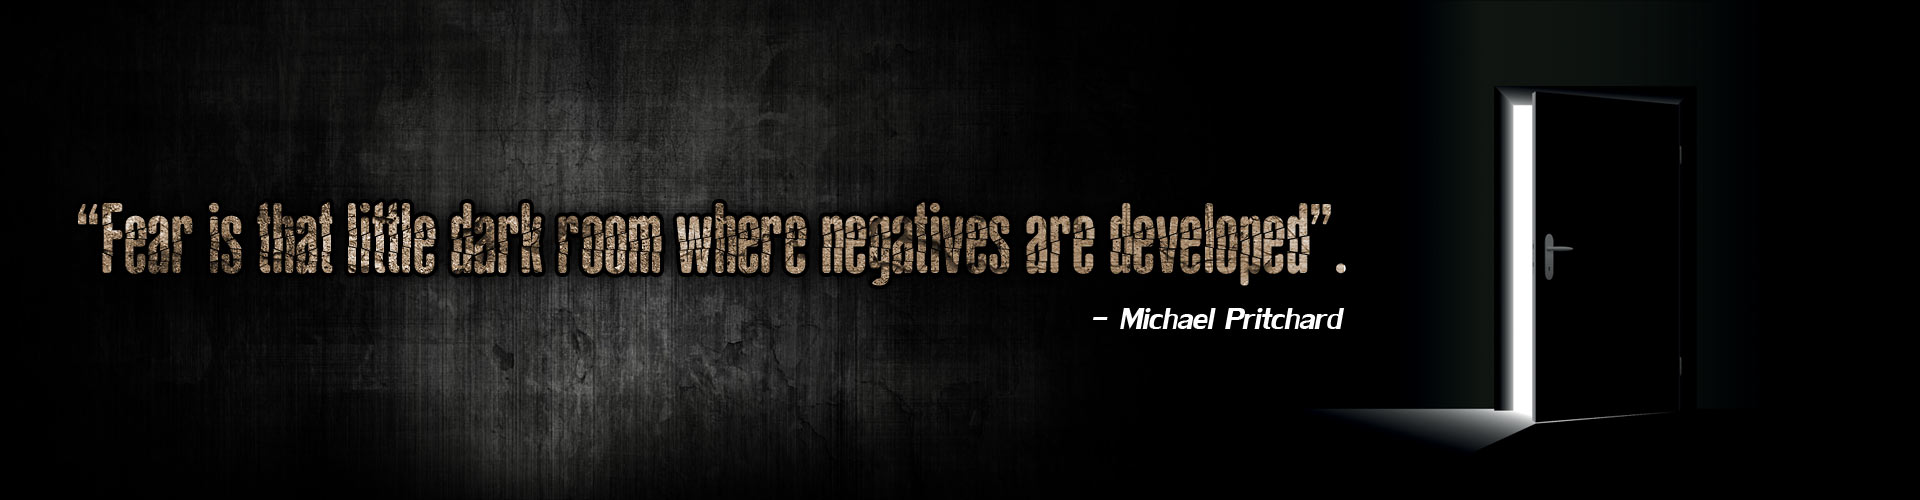 """""""Fear is that little dark room where negatives are developed�. - Michael Pritchard"""